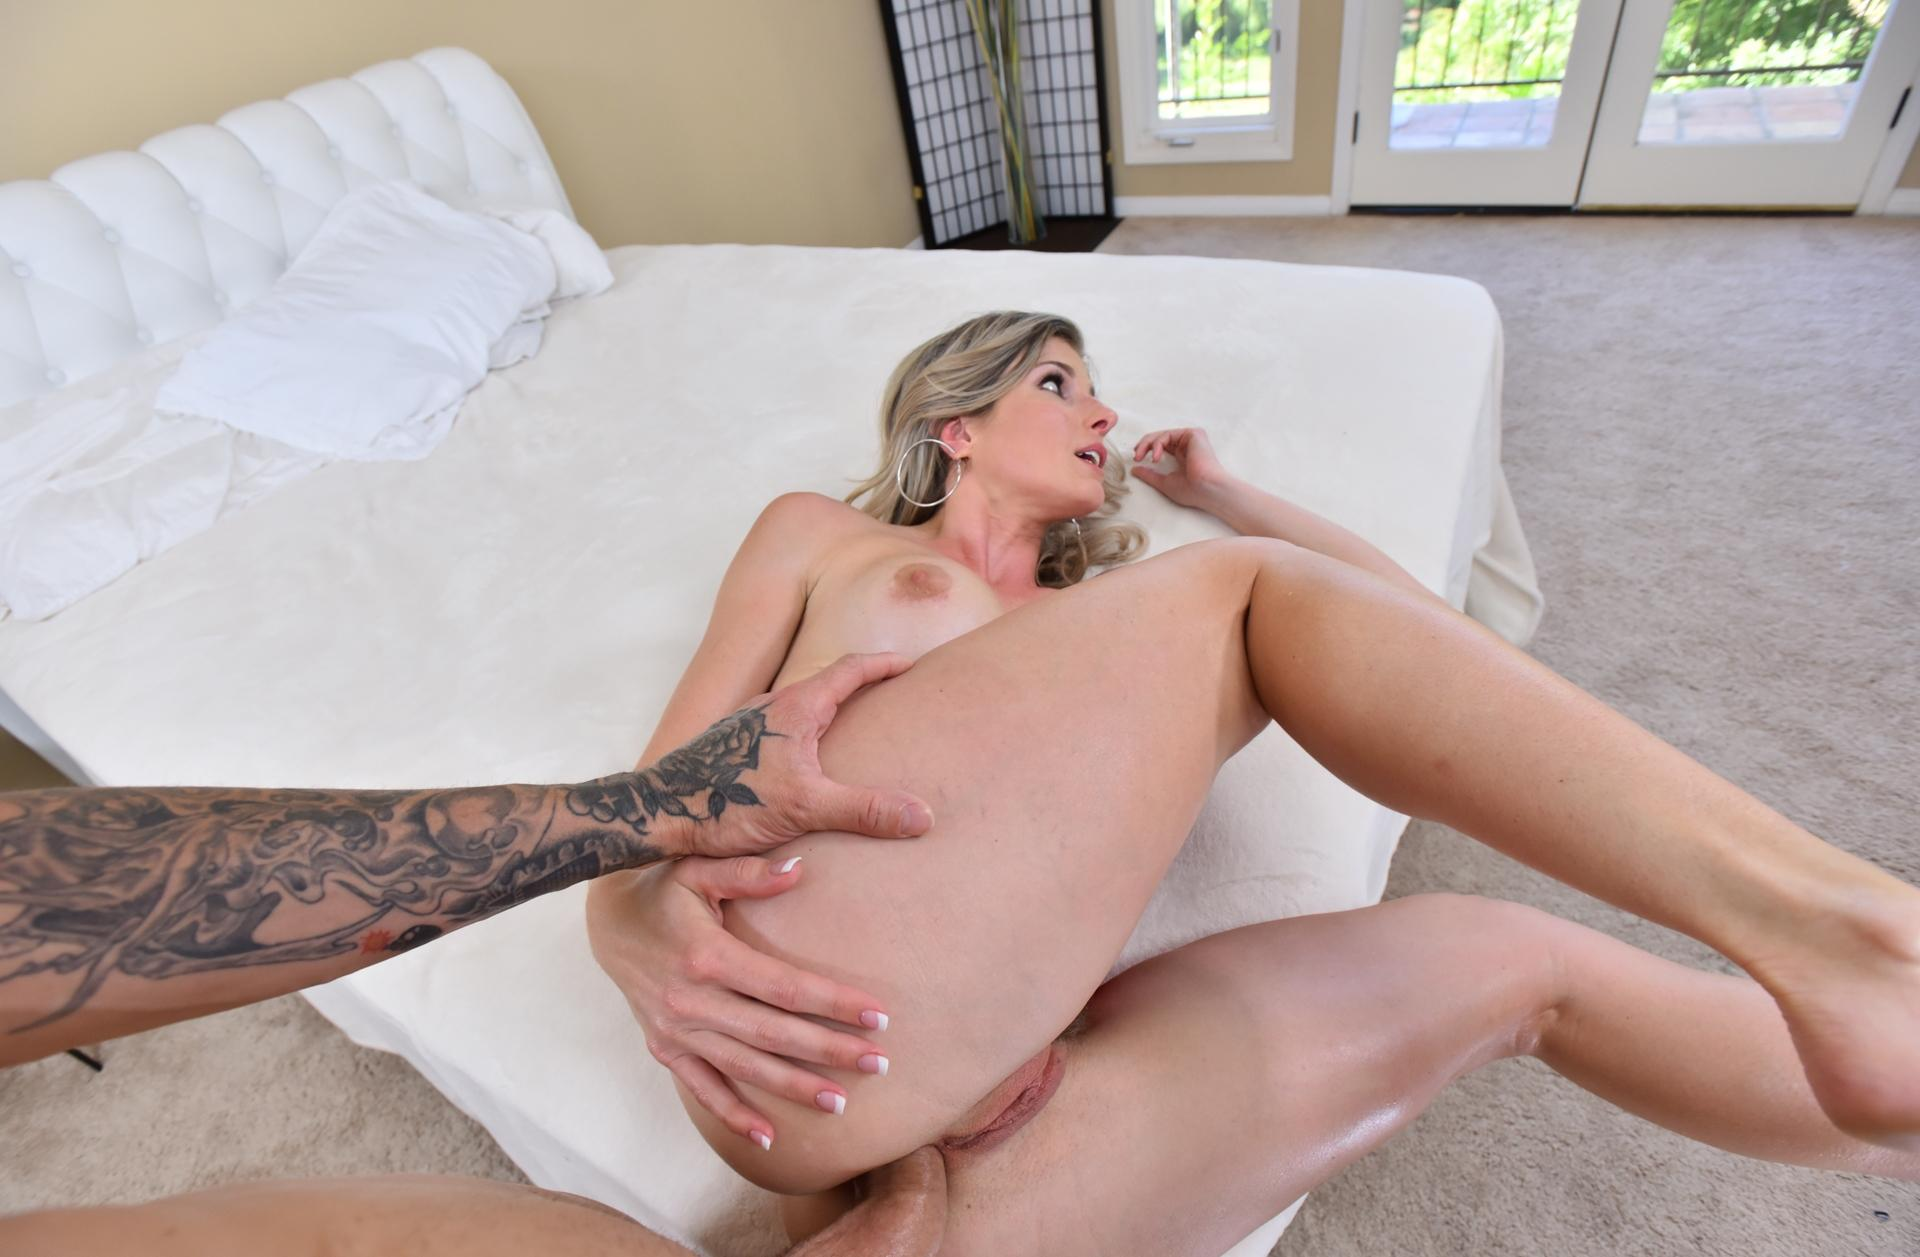 missbehaving conservative secretary Cory Chase gets rectum and mindfucked picture 5